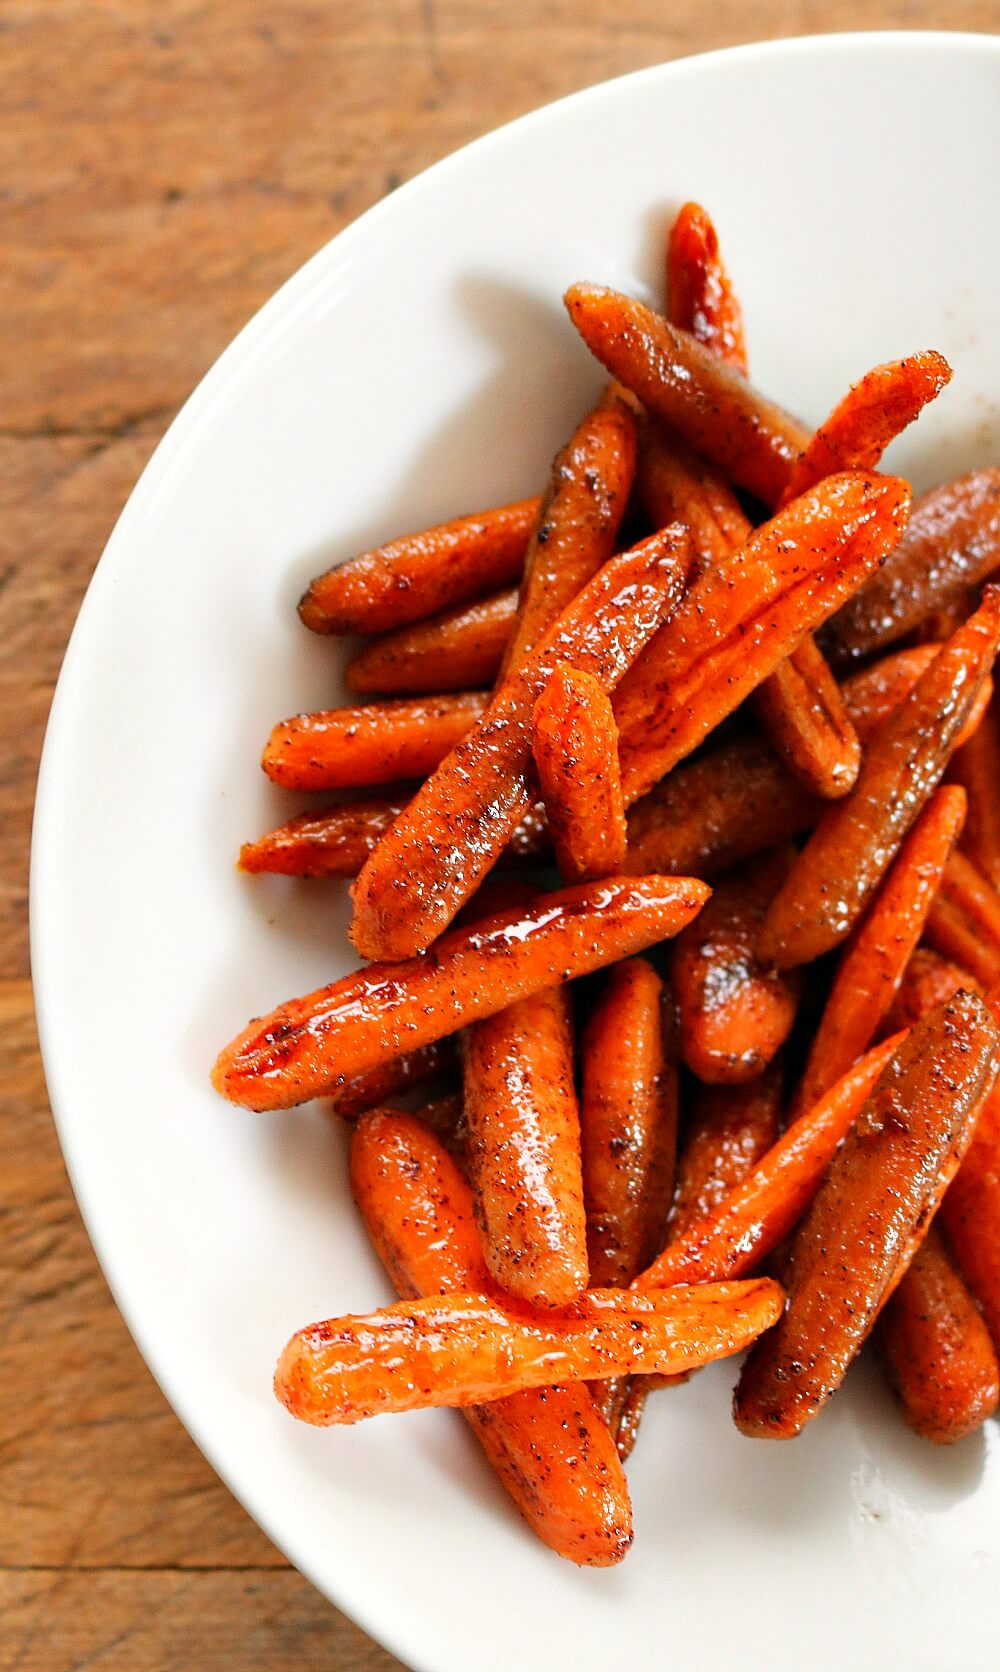 Normally I boil them on the stove and add some butter but this recipe for Honey Glazed Oven Roasted Carrots is our new favorite.